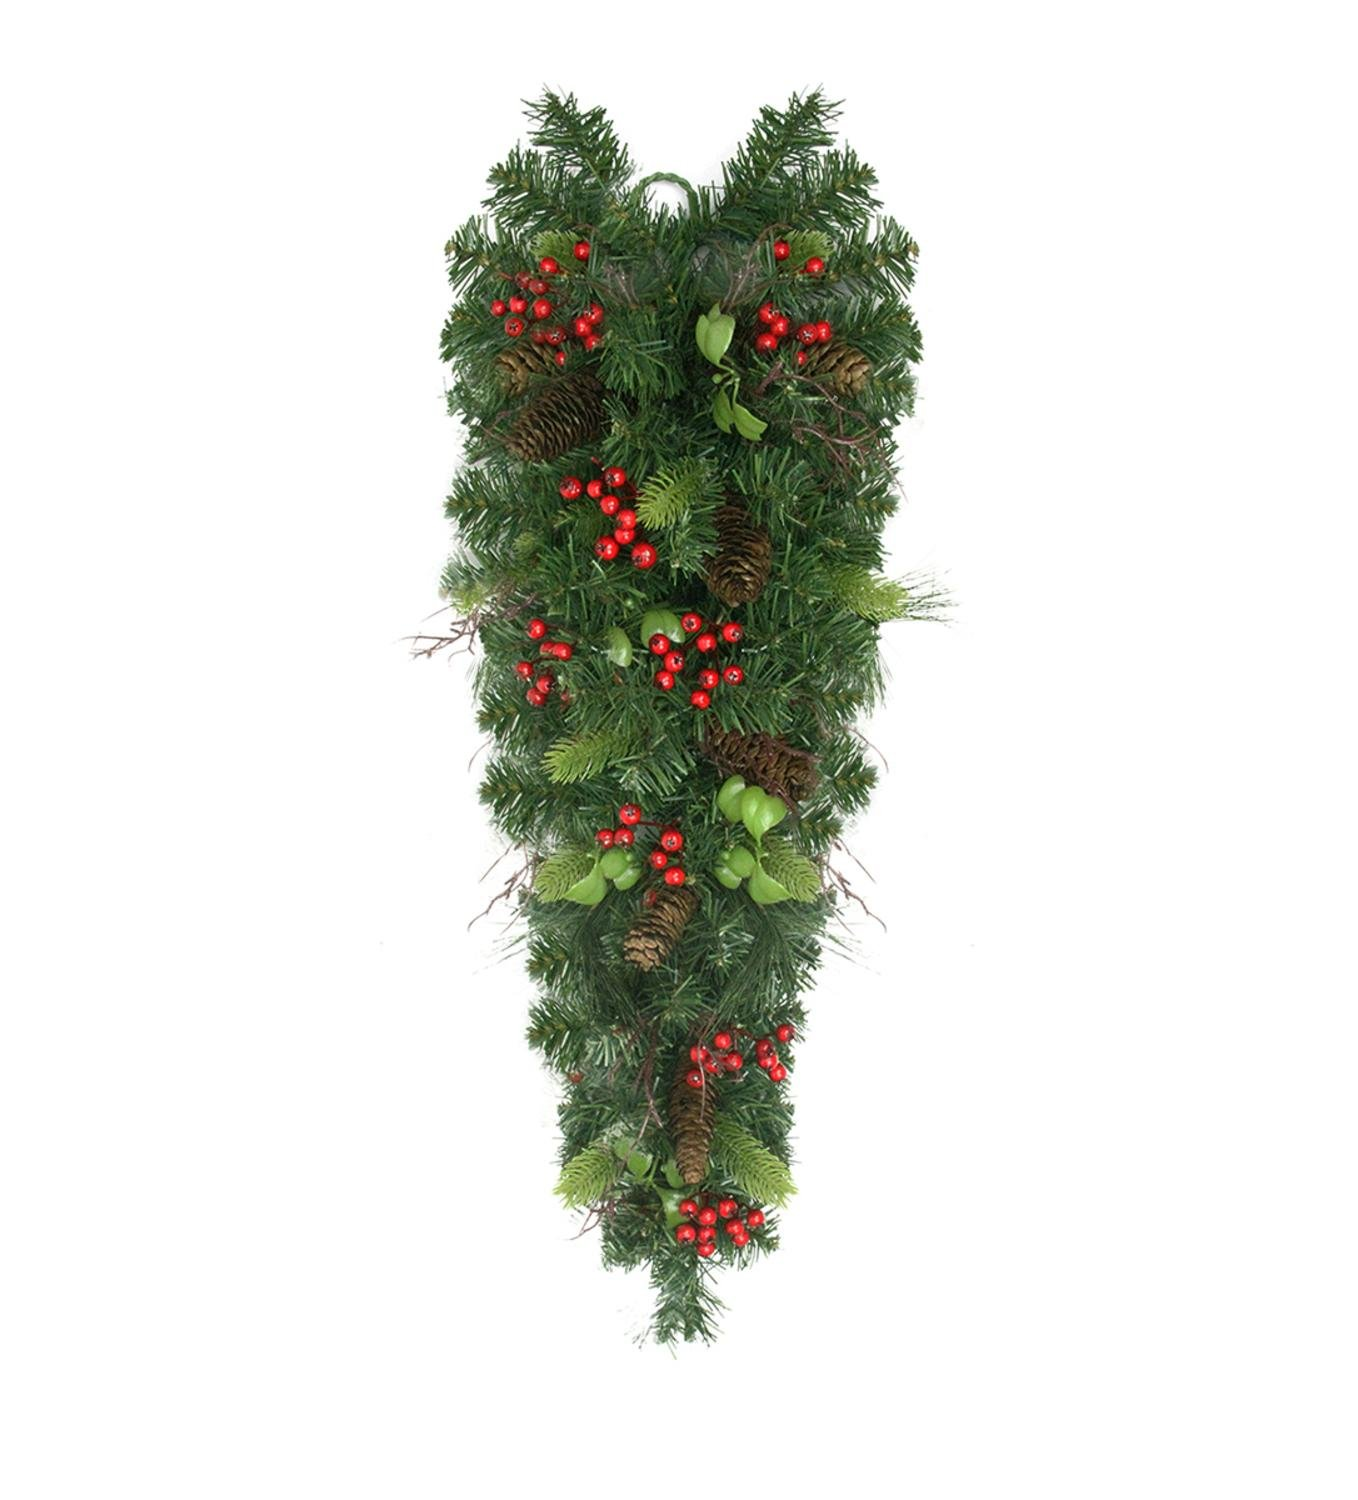 Northlight 30'' Mixed Pine with Red Berries and Pine Cones Artificial Christmas Teardrop Swag - Unlit